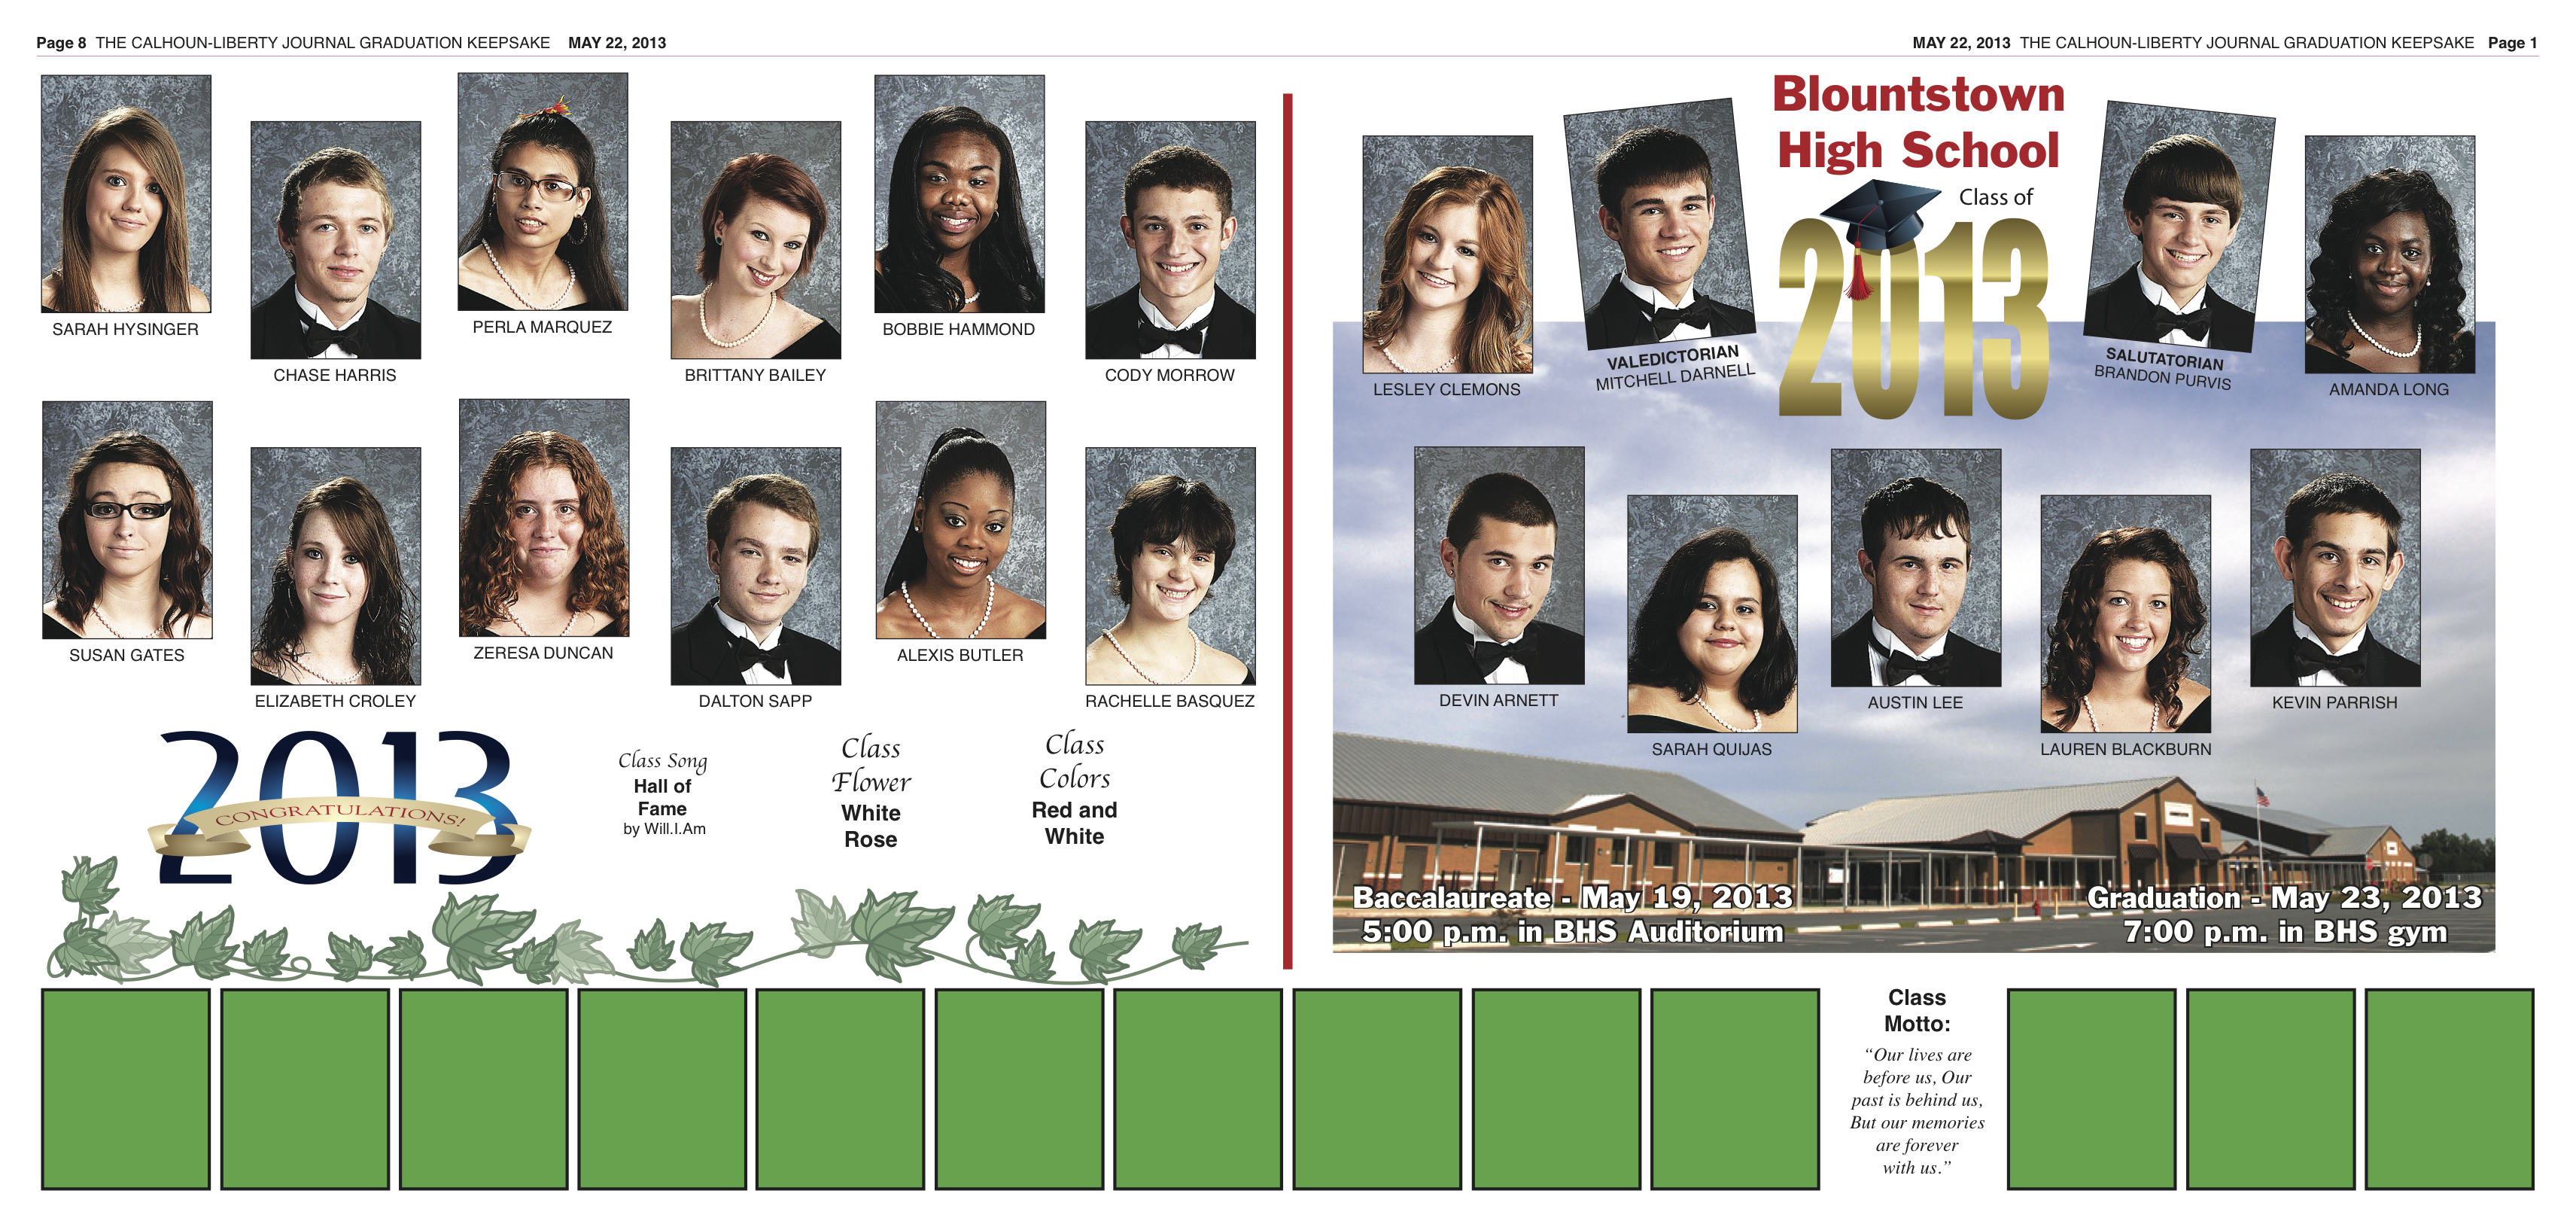 BHS Grad Section Page 1, 8